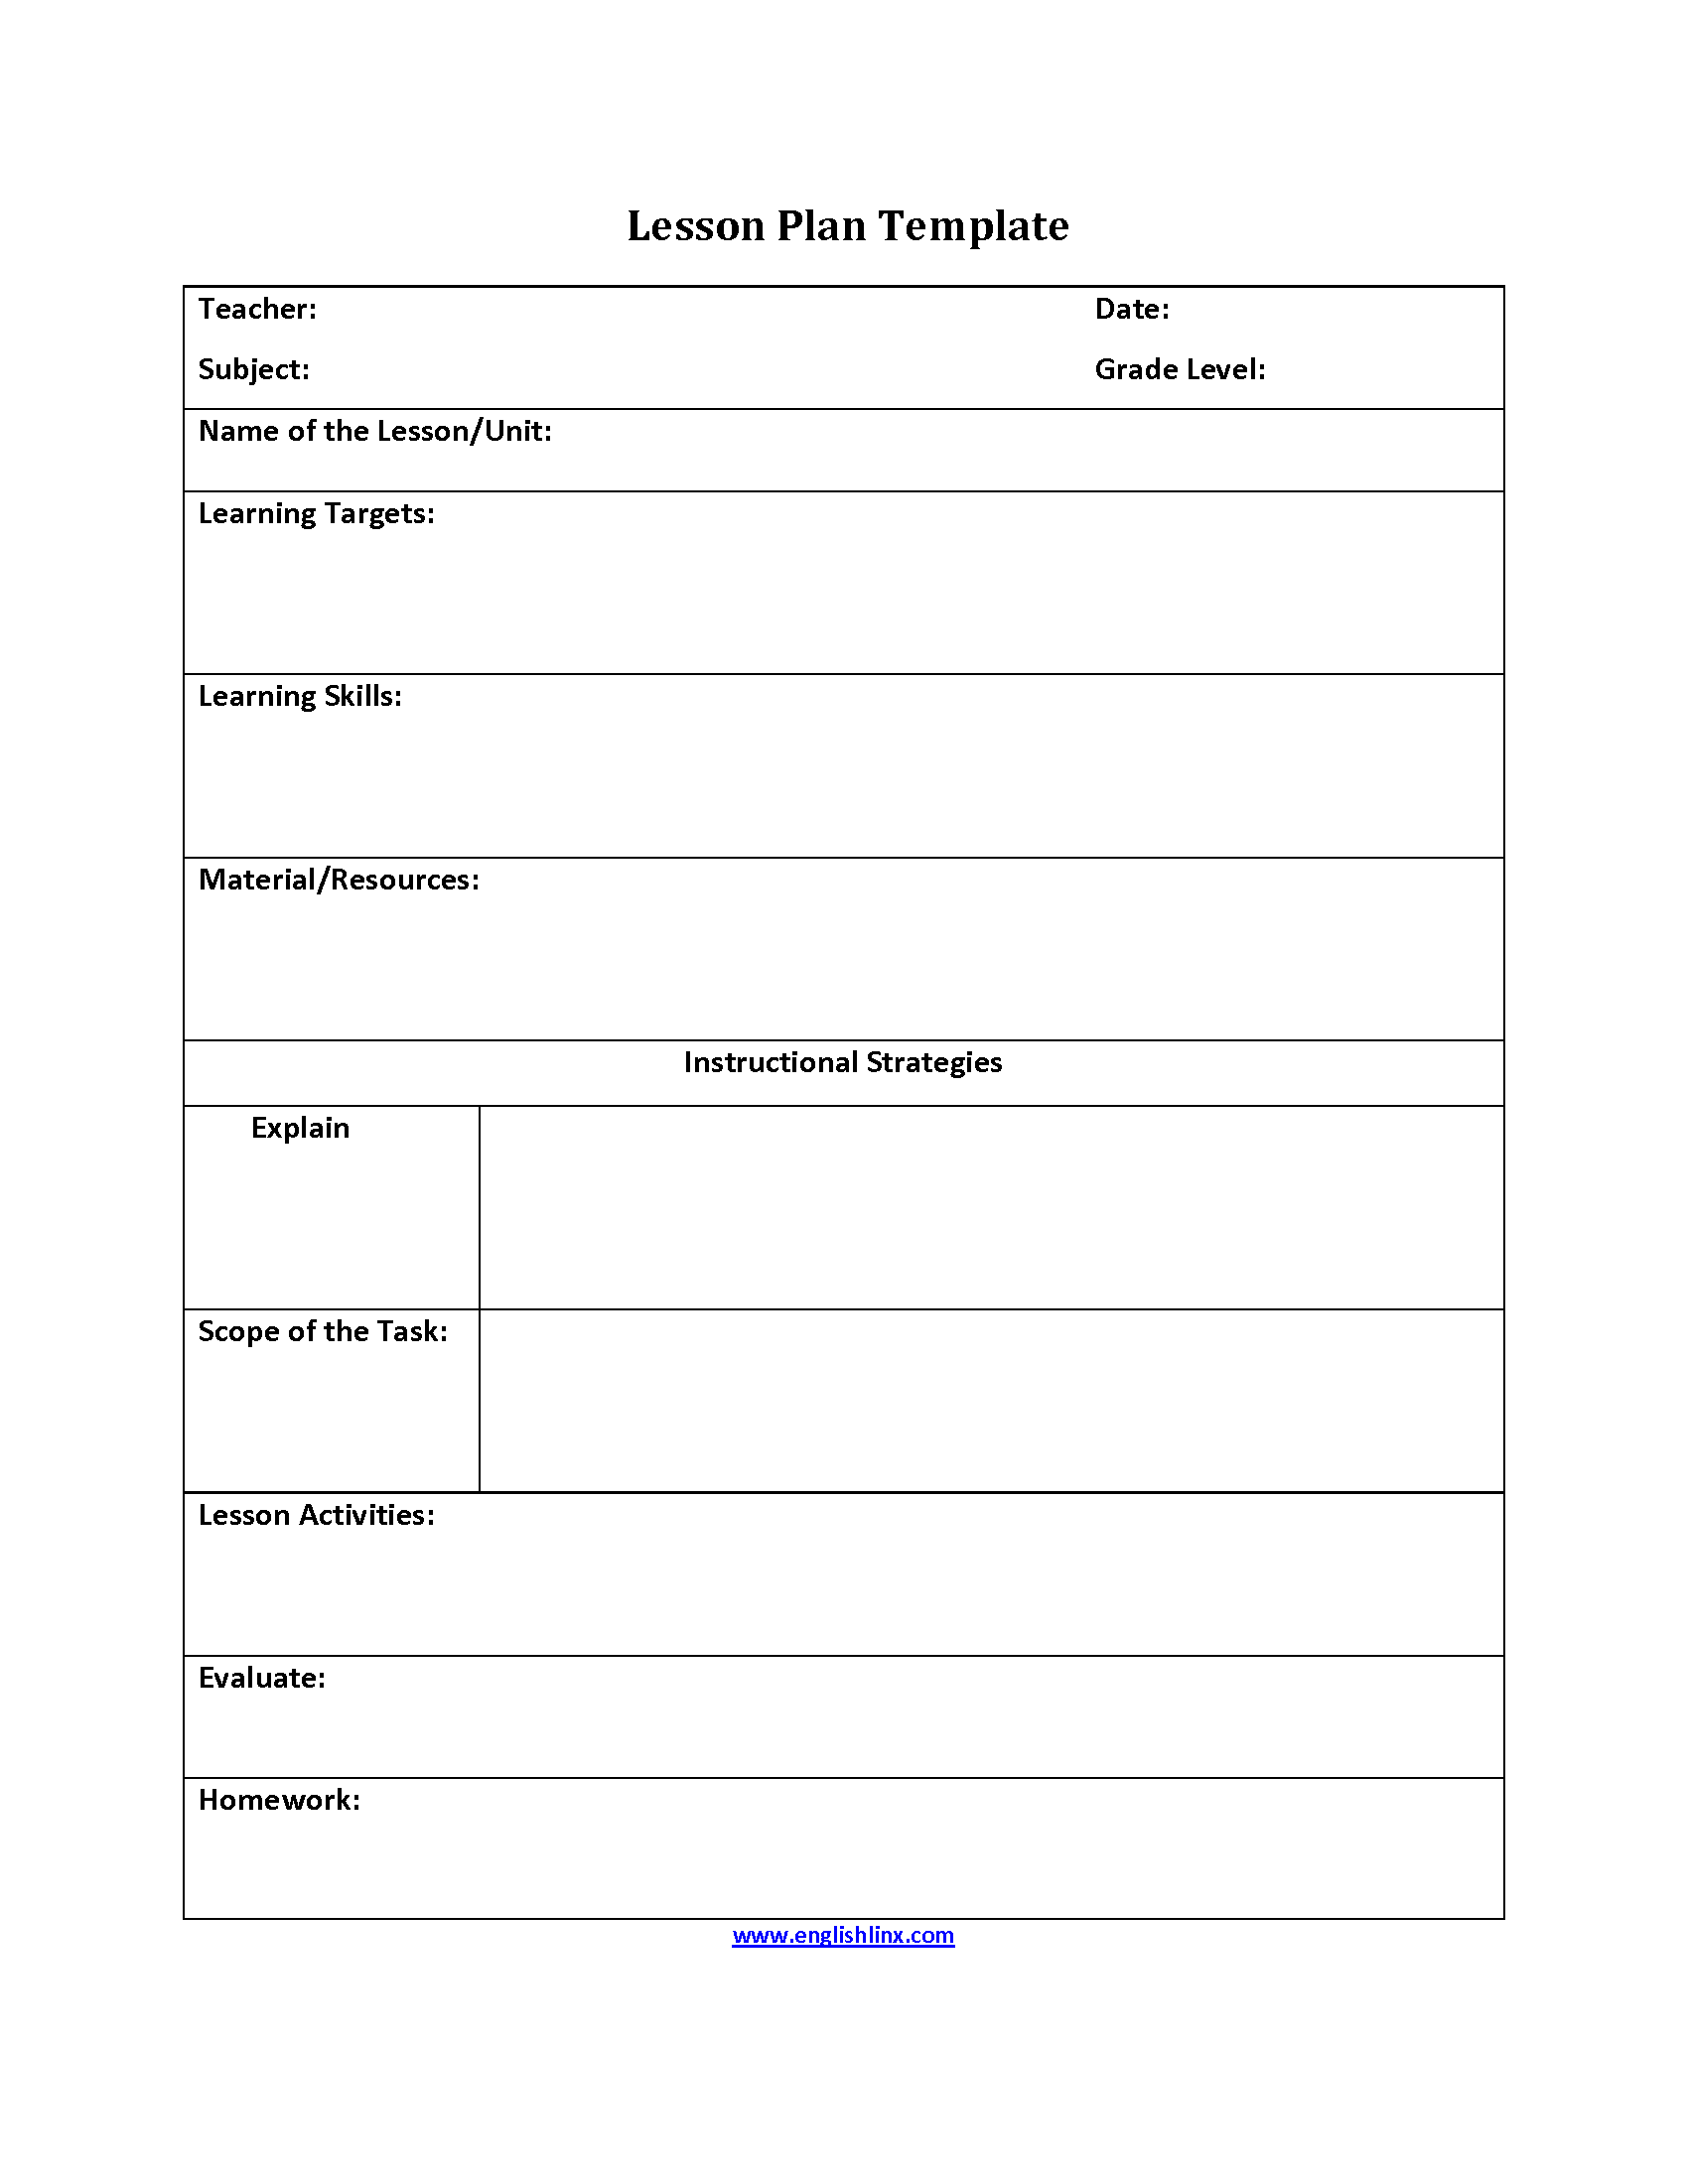 Lesson plan template for 6 week lesson plan template